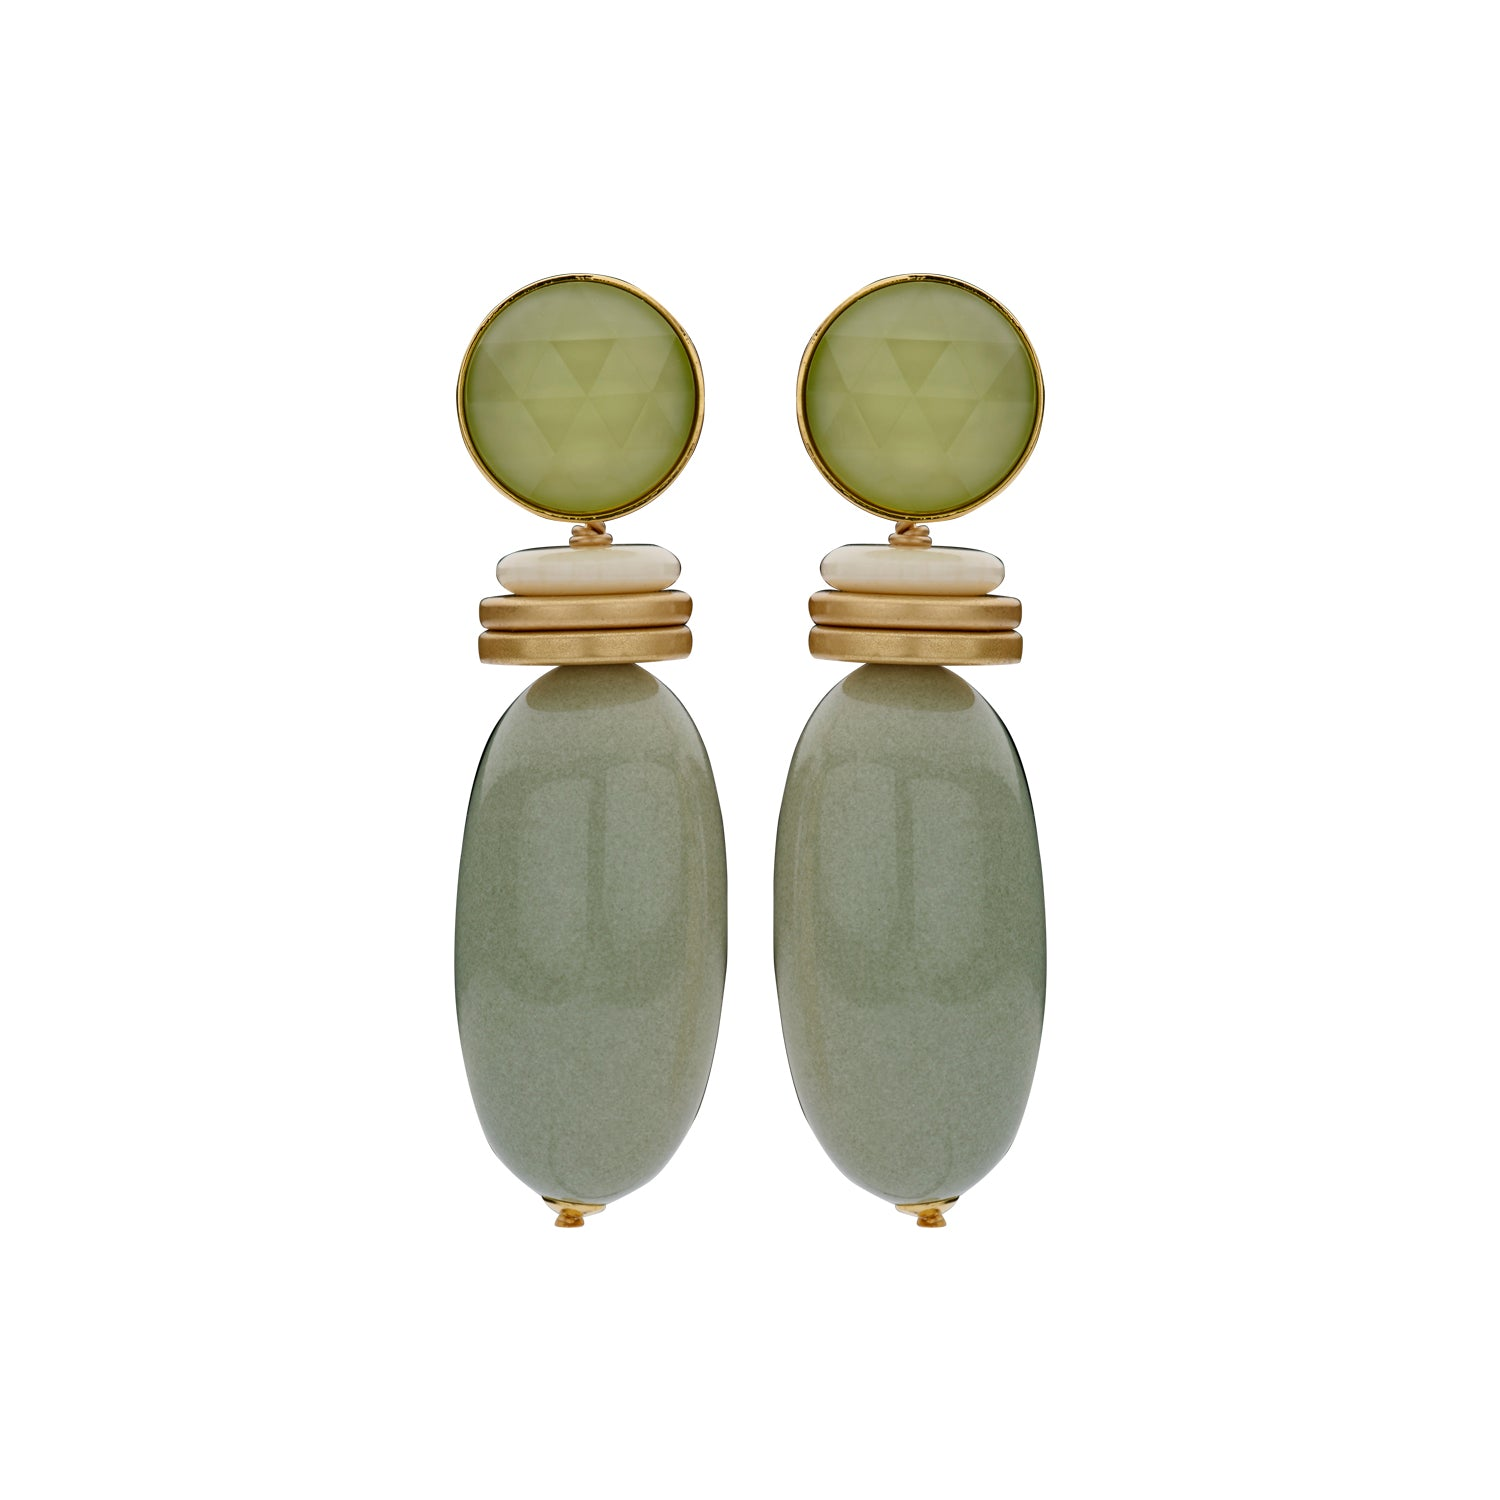 Nanou bold light kaki earrings - Souvenirs de Pomme